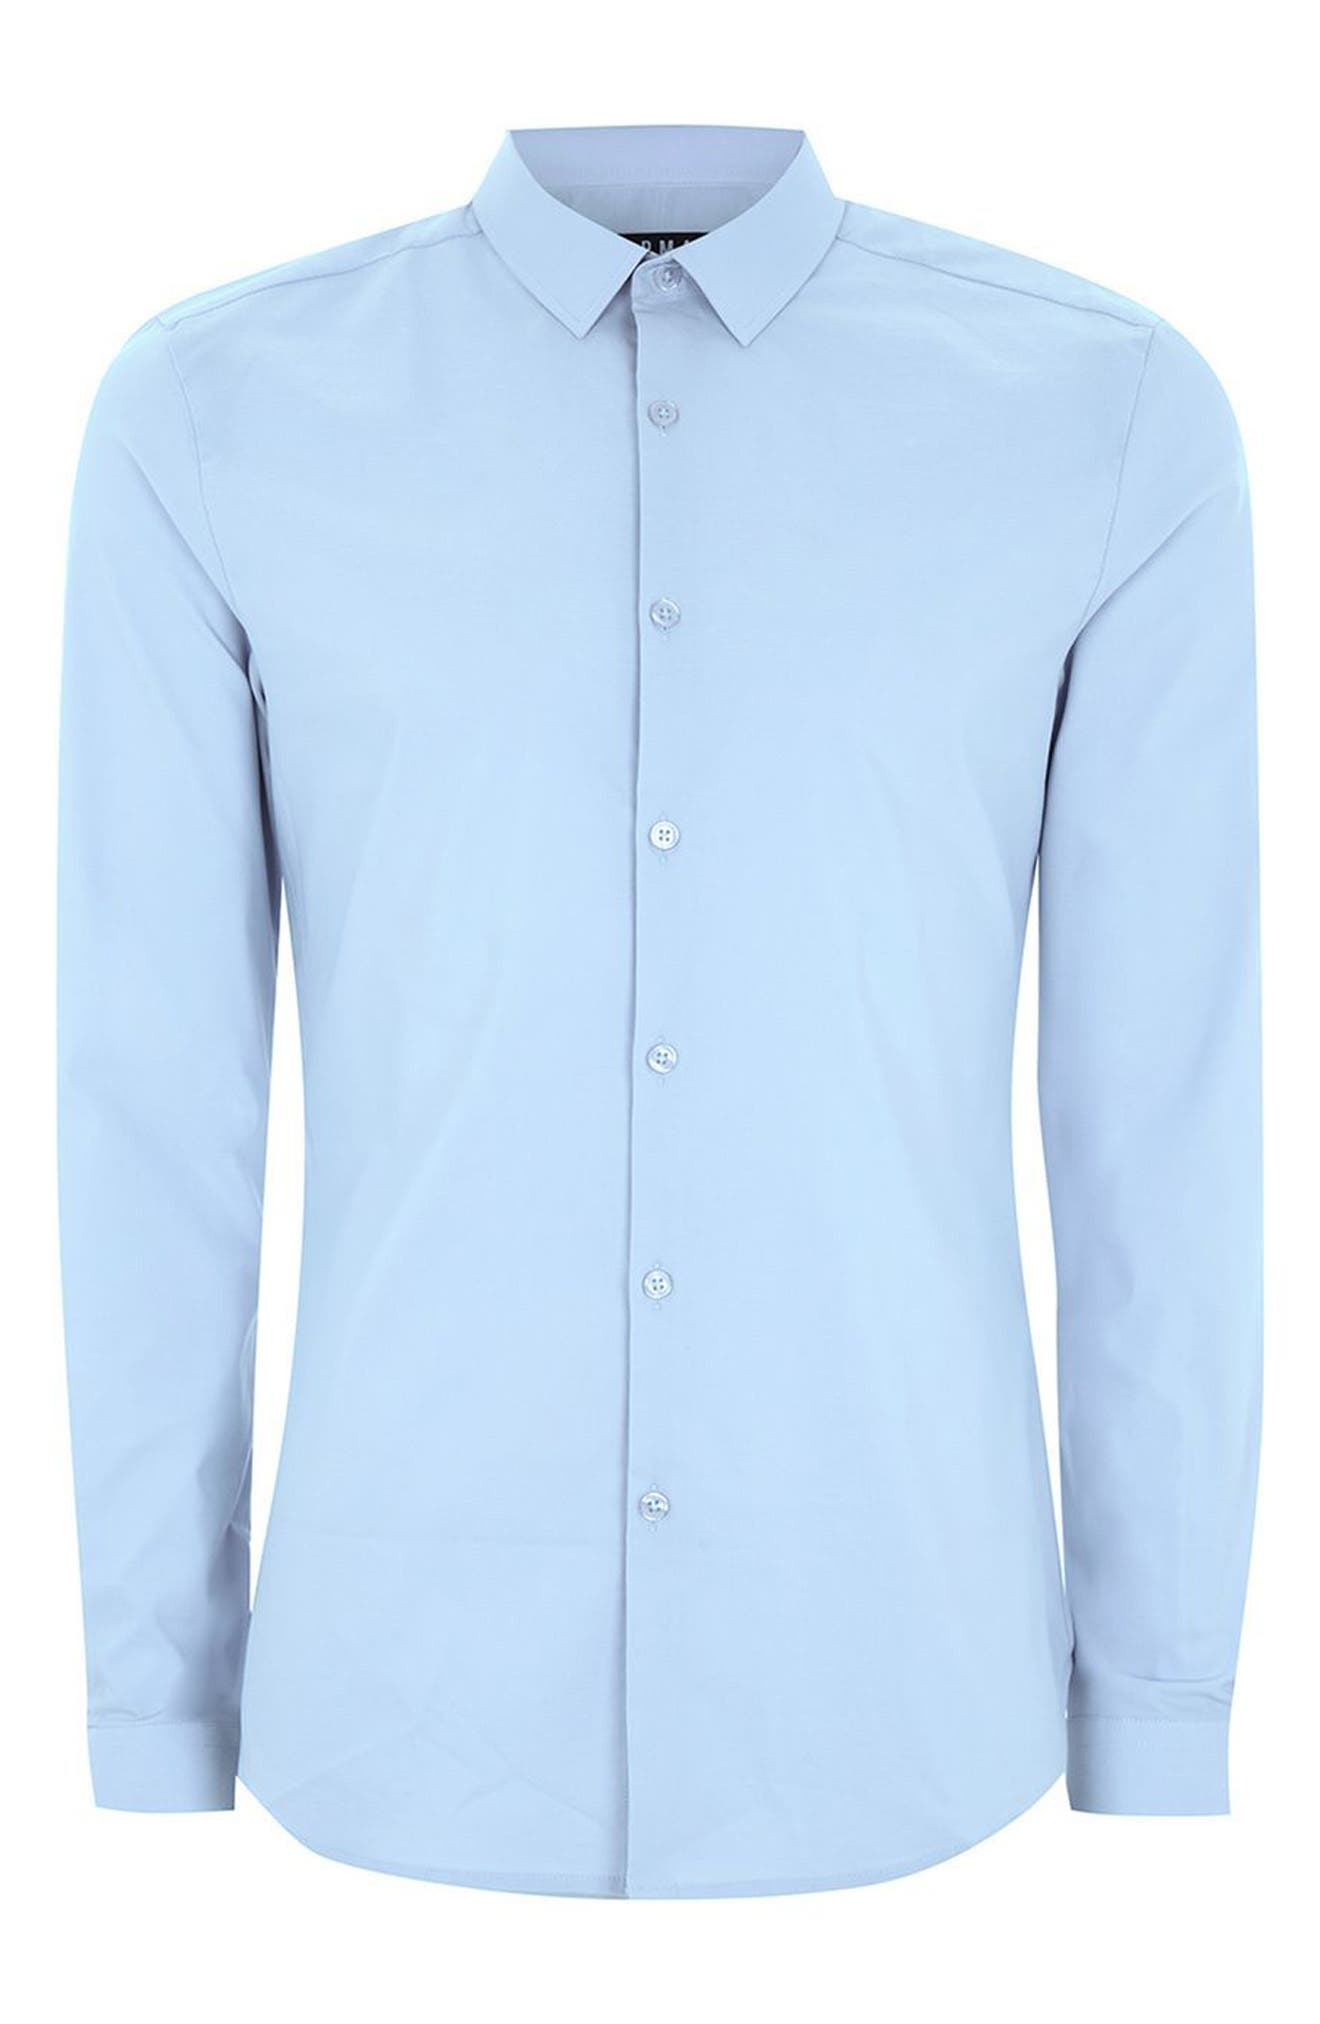 Muscle Fit Dress Shirt,                             Alternate thumbnail 3, color,                             LIGHT BLUE